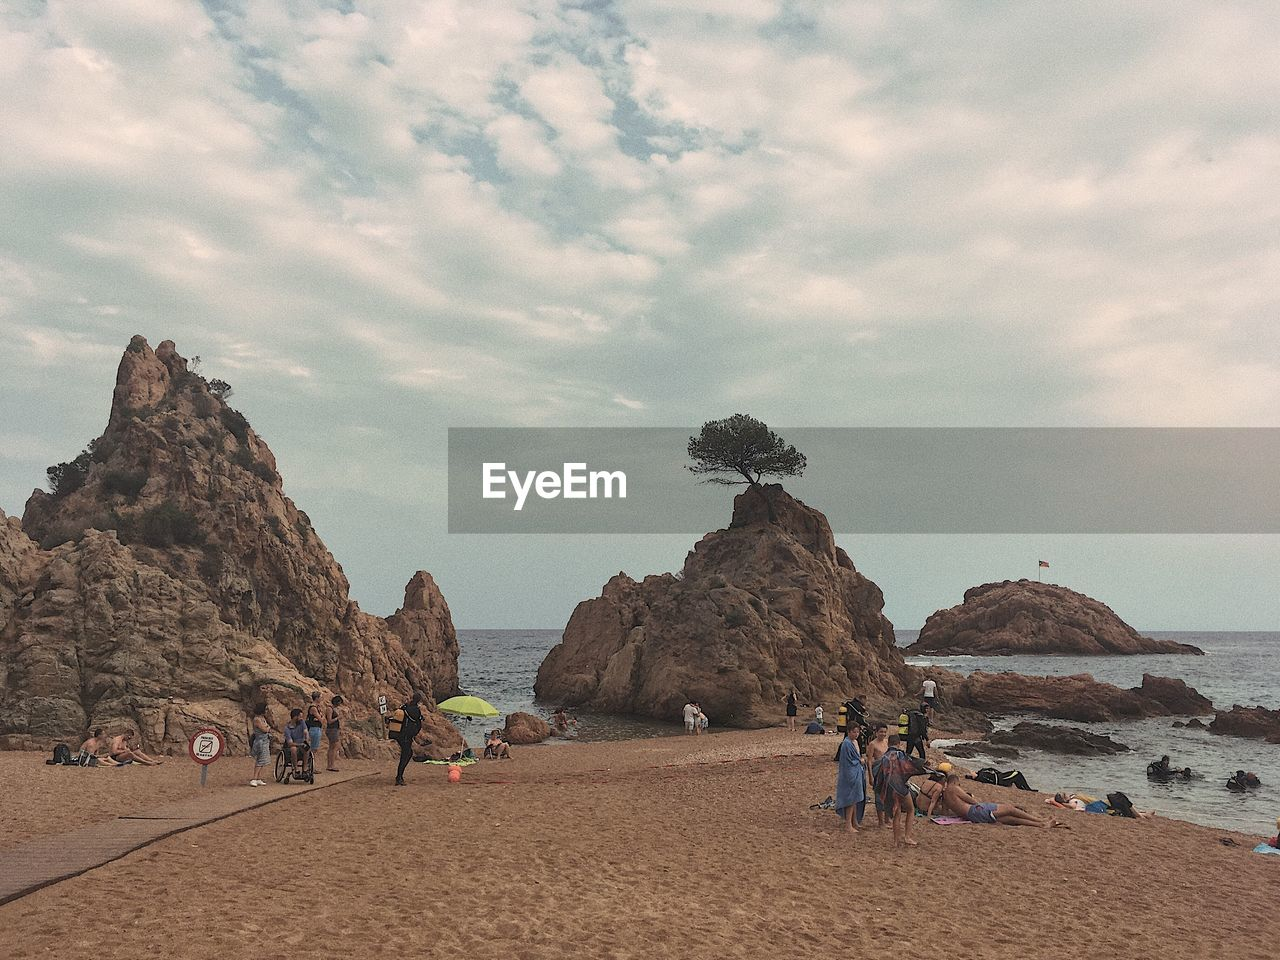 sky, cloud - sky, beach, nature, sand, real people, large group of people, rock formation, sea, rock - object, lifestyles, leisure activity, beauty in nature, scenics, outdoors, day, walking, men, women, mountain, vacations, water, people